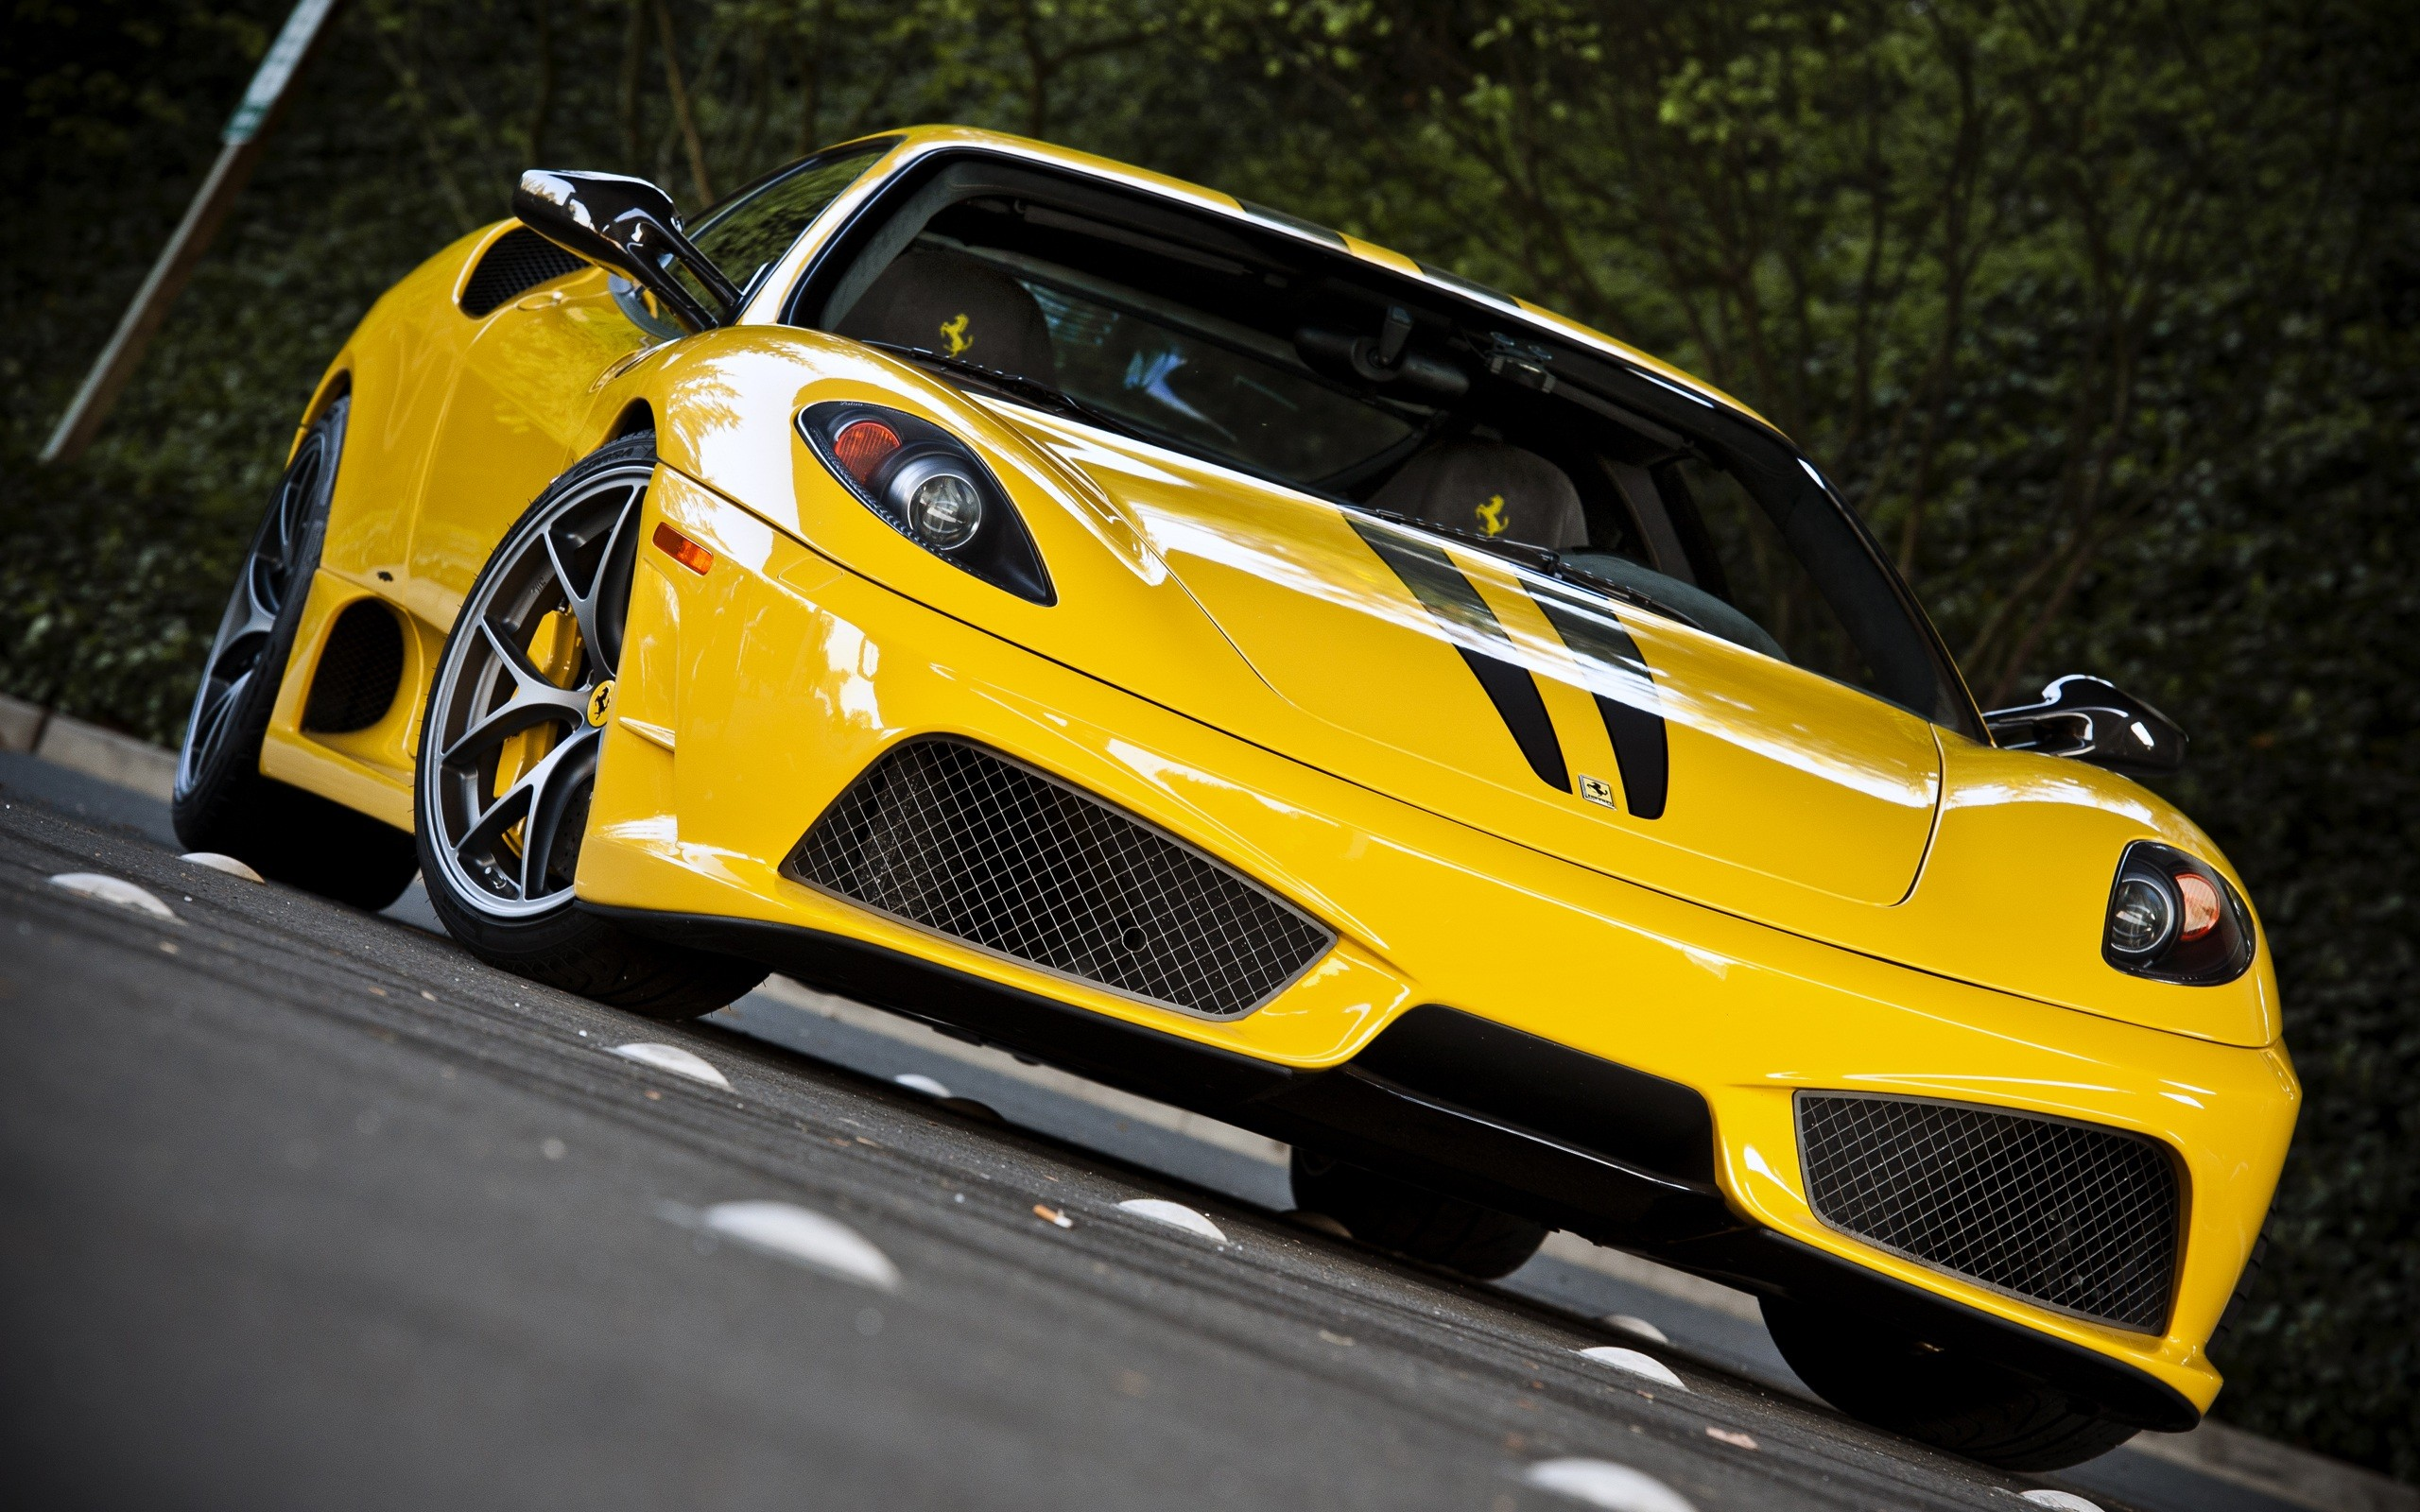 Amazing Yellow Ferrari Wallpaper 2560x1600 2527